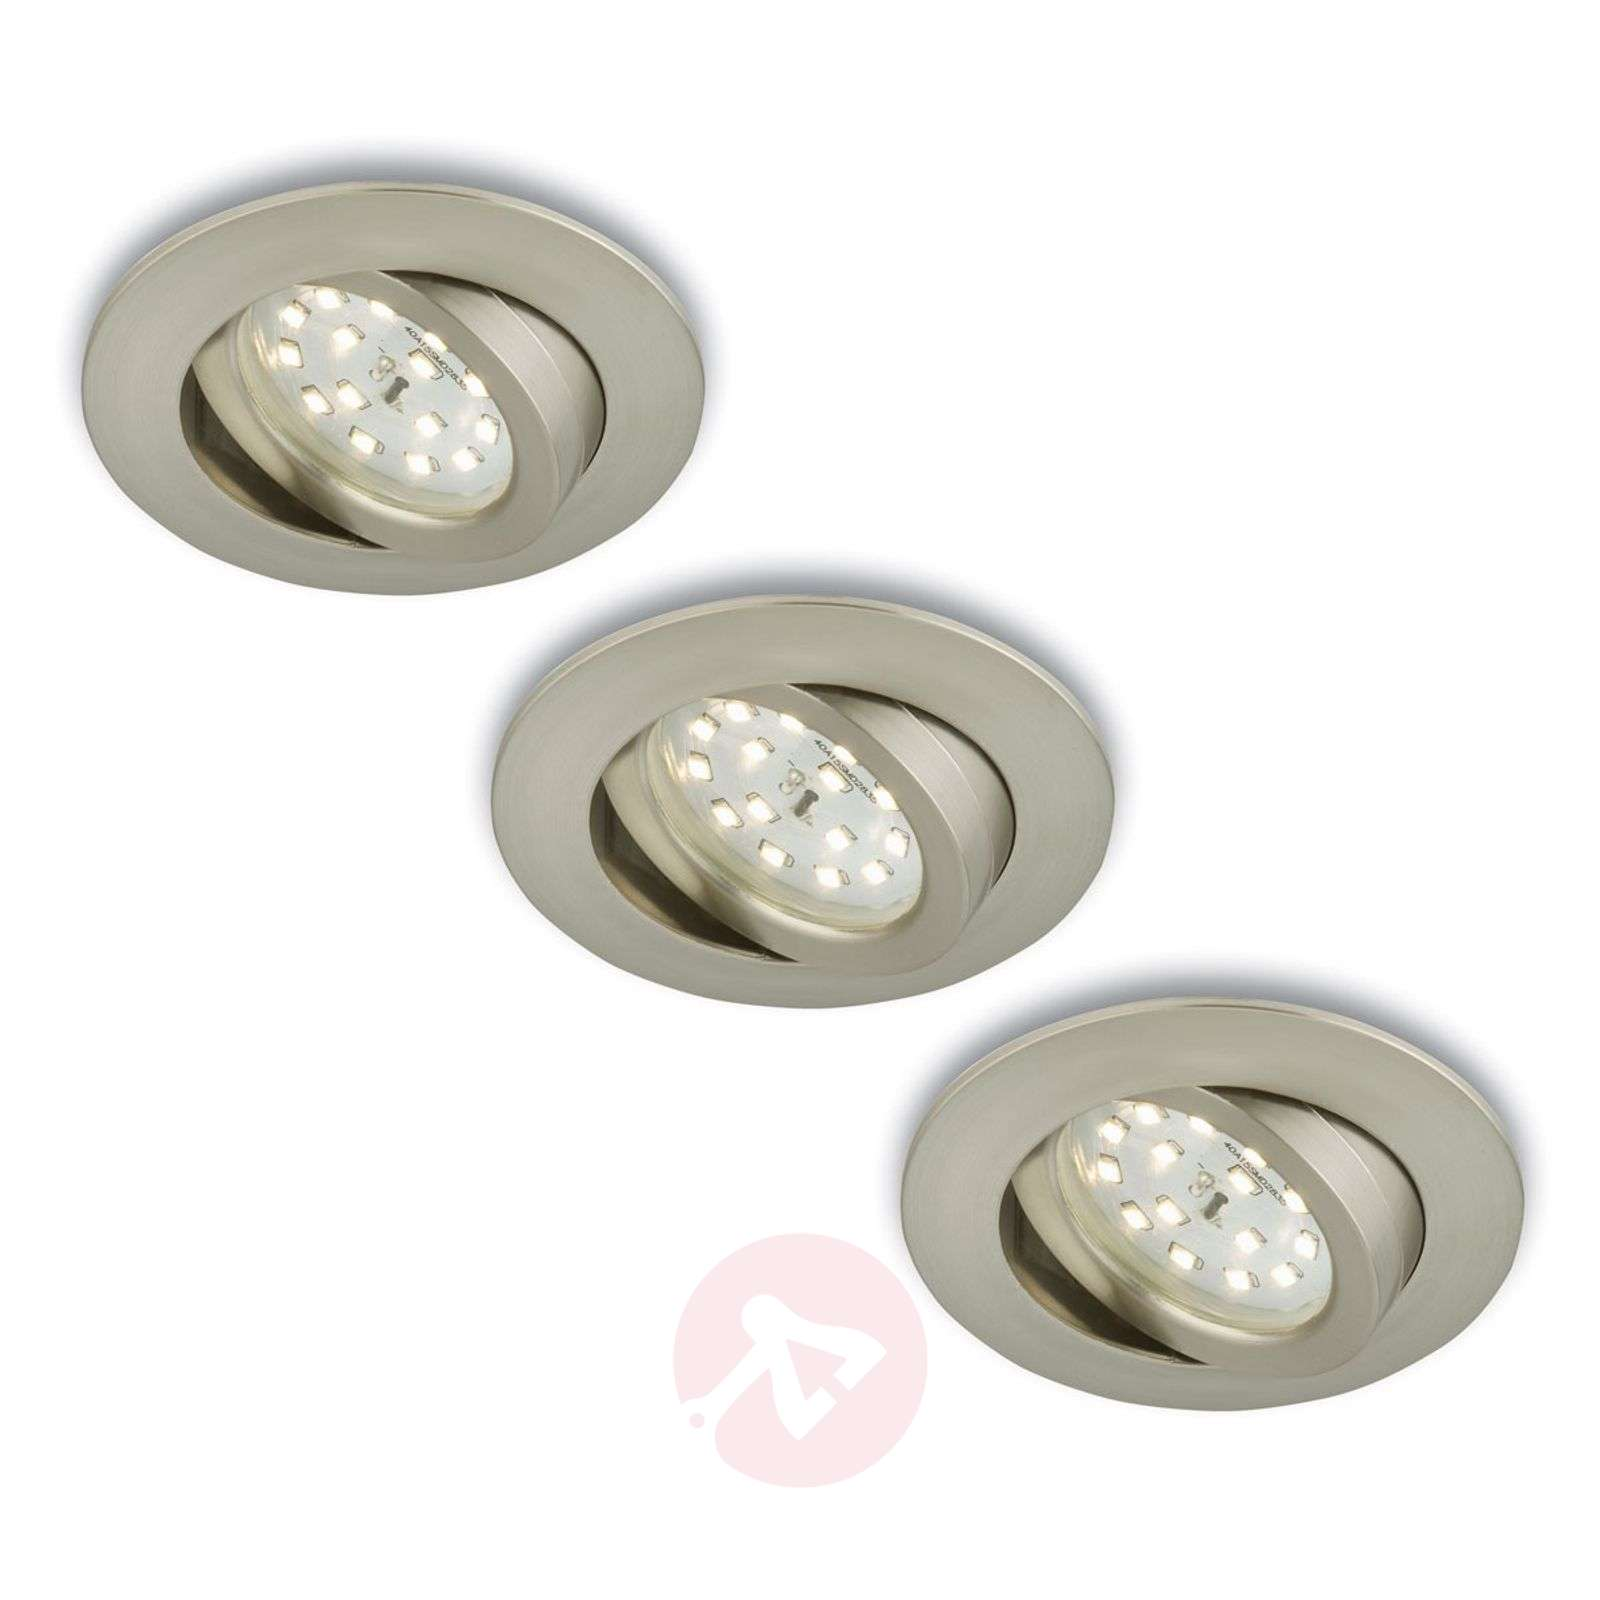 Spot encastré LED rotatif en set de 3 nickel mat-1510288-01